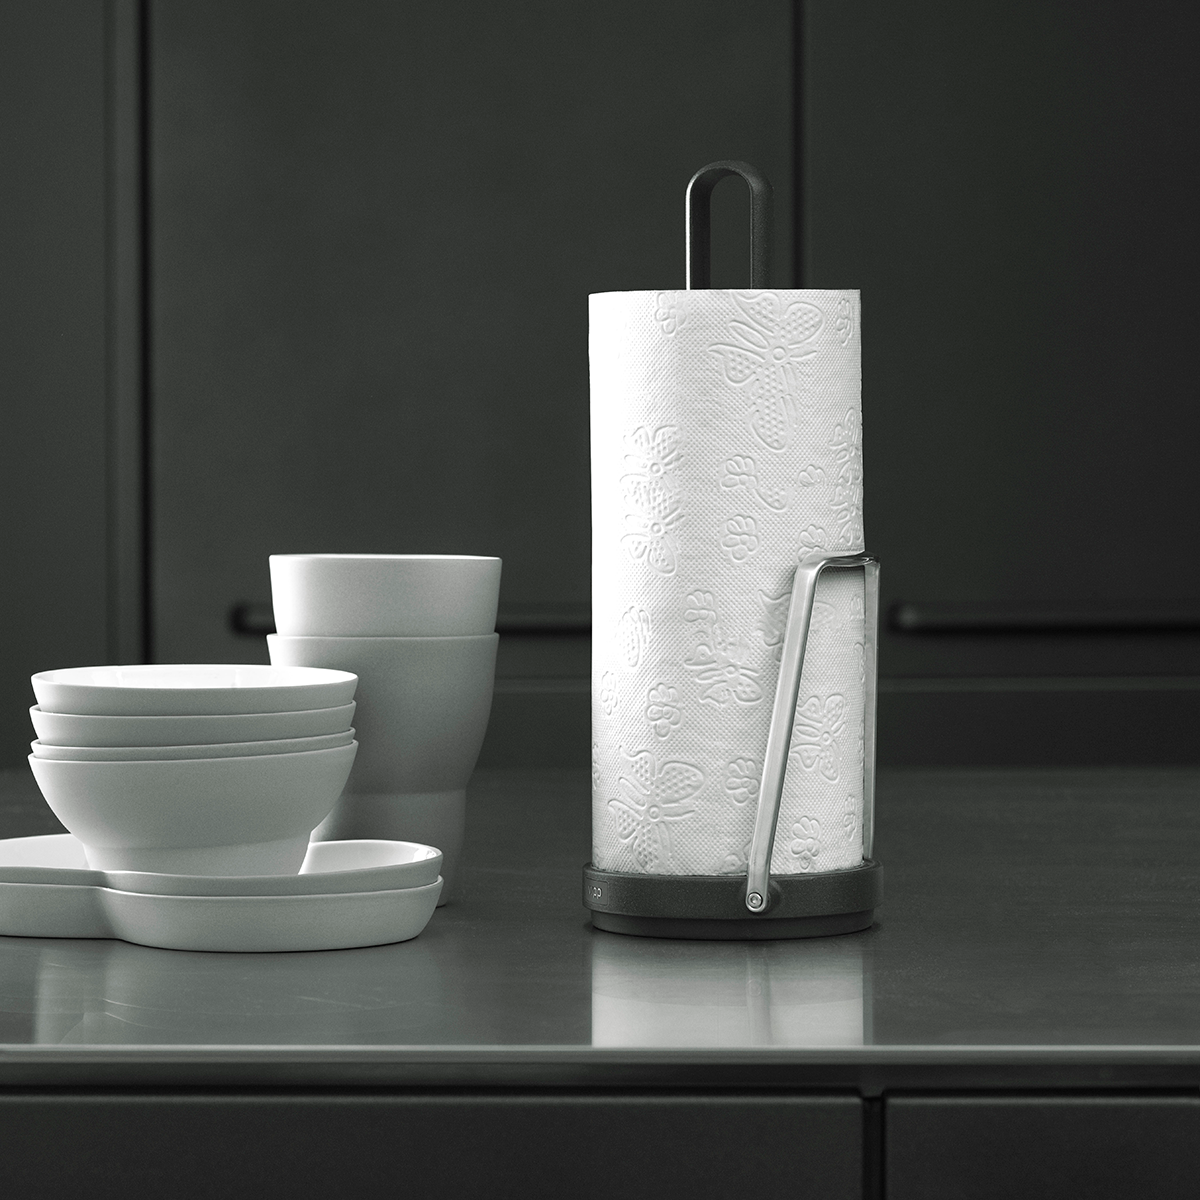 Vipp Kitchen 266, Kitchen Roll Holder 廚房 立式紙巾架